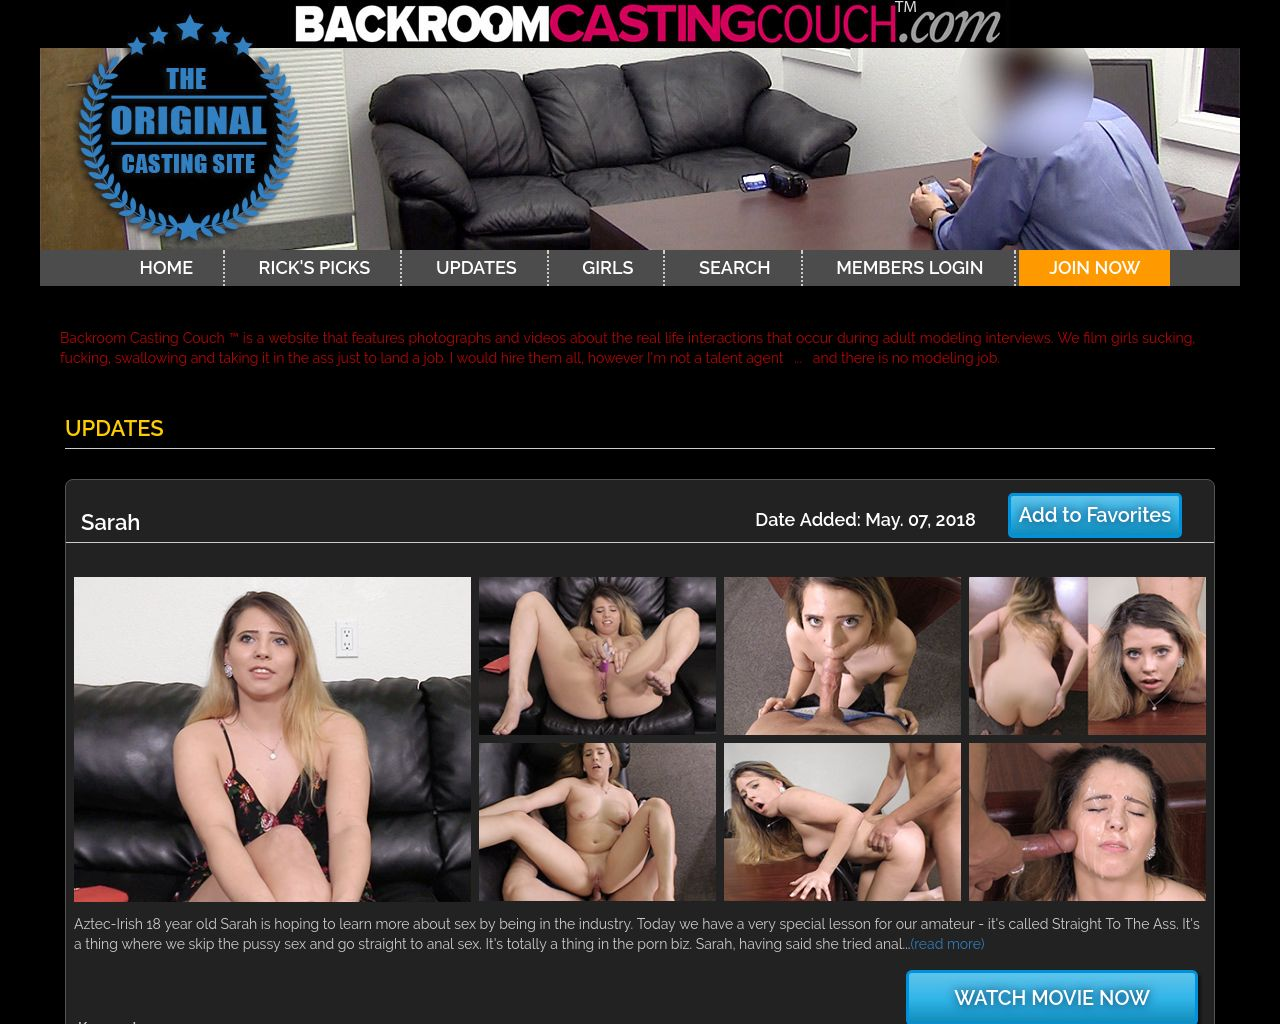 https://premiumparadise.com/wp-content/uploads/2018/06/backroomcastingcouch.com-BzvHPUniooZWLQtWUfNmWcOO.jpg pass